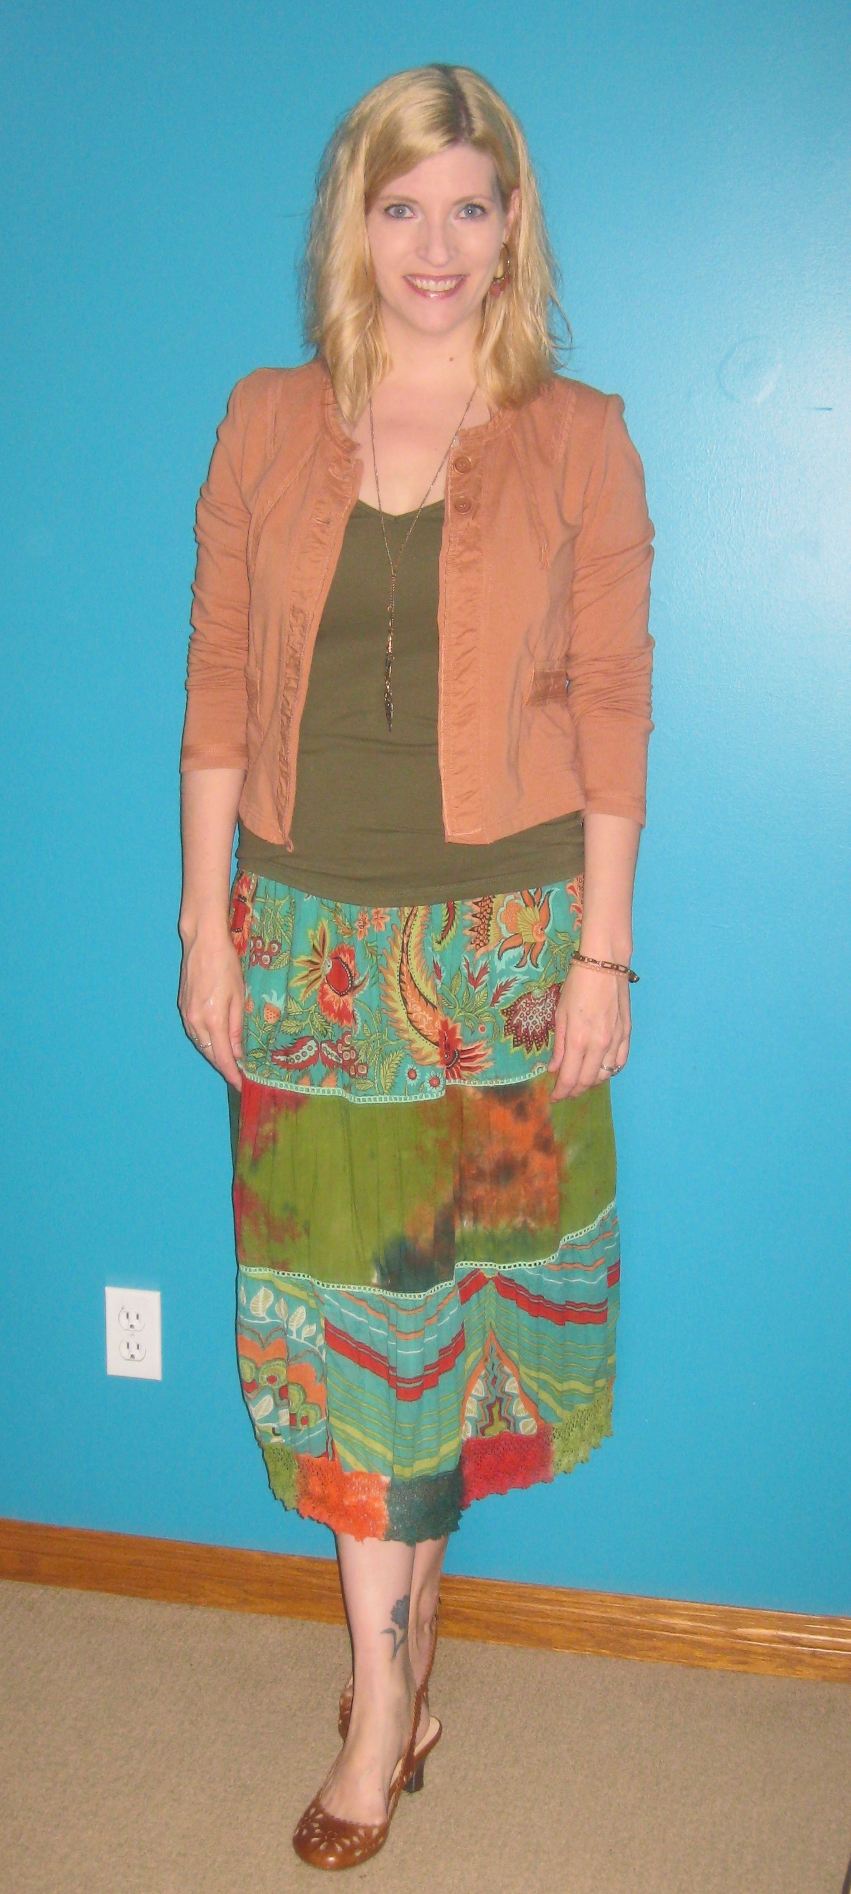 Midi skirt $2.50 Hope Missions Bargain Shoppe, olive tank $4 Value Village, Sandwich structured cardi $5 Salvation Army Thrift Store, Metal feather necklace  $2.50 Salvation Army Thrift Store and Miz Mooz slingbacks $9.80